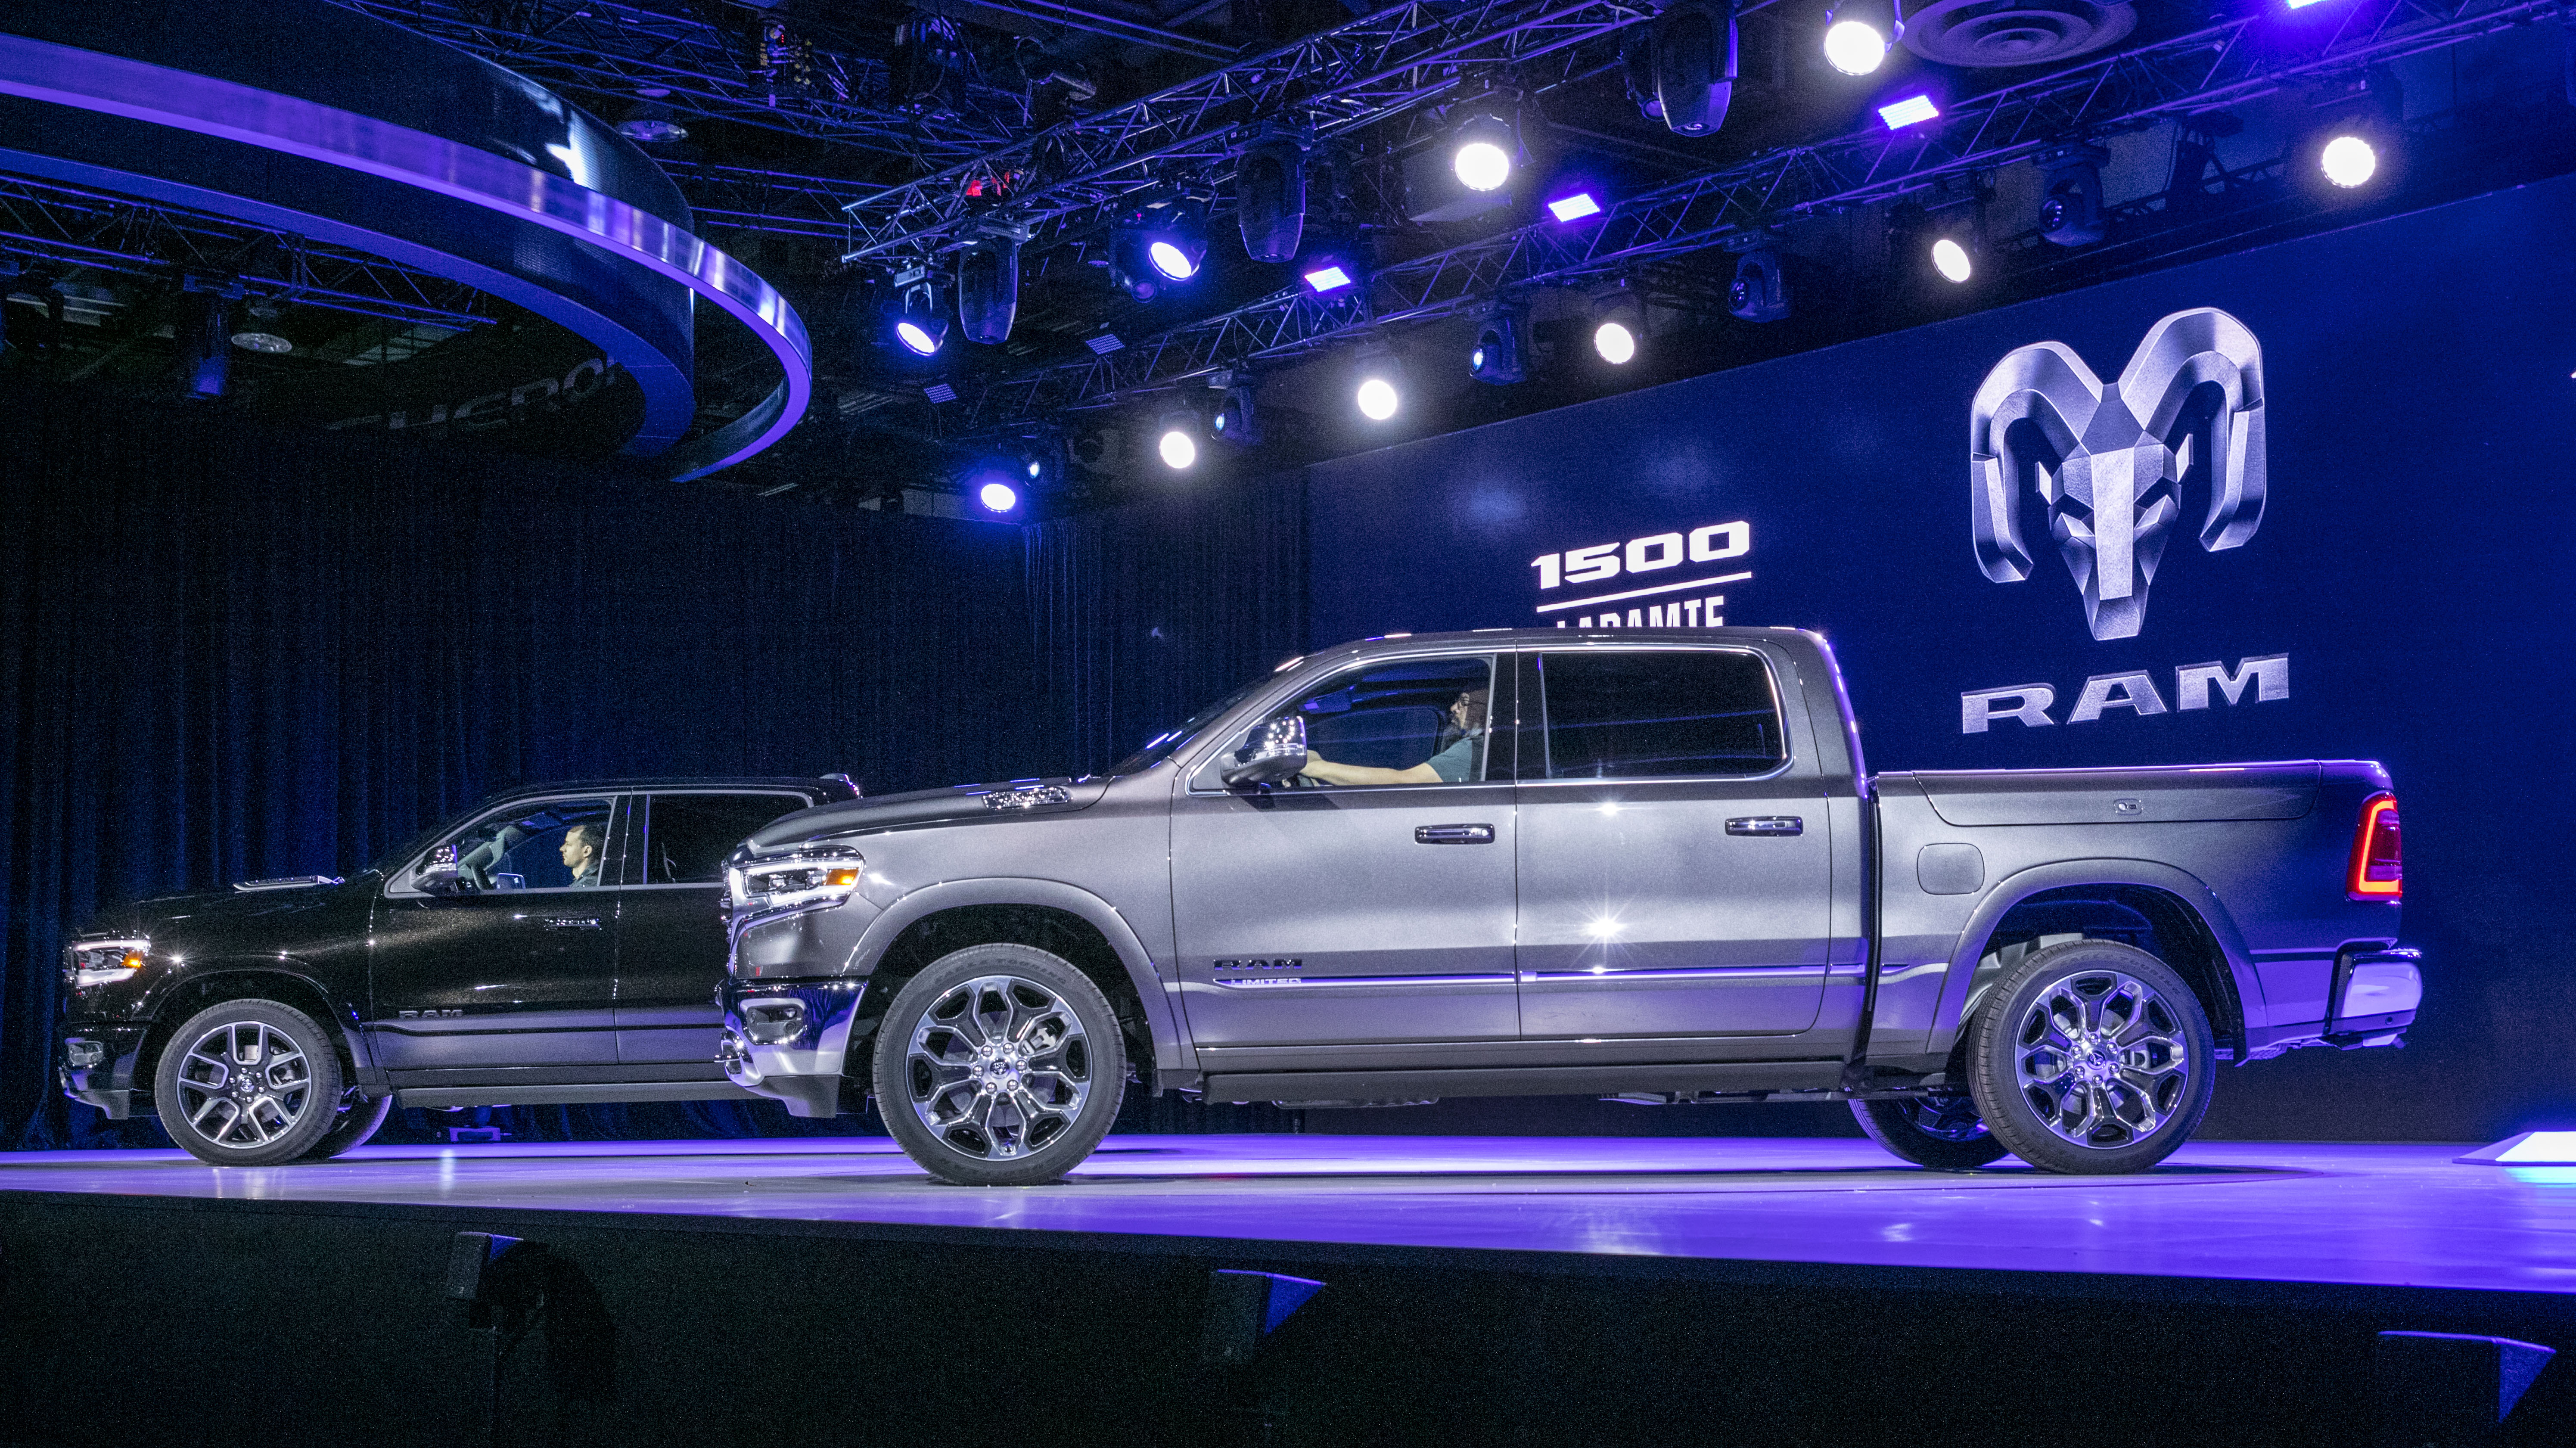 FCA US Media - All-new 2019 Ram 1500 – No Compromise Truck, Leading